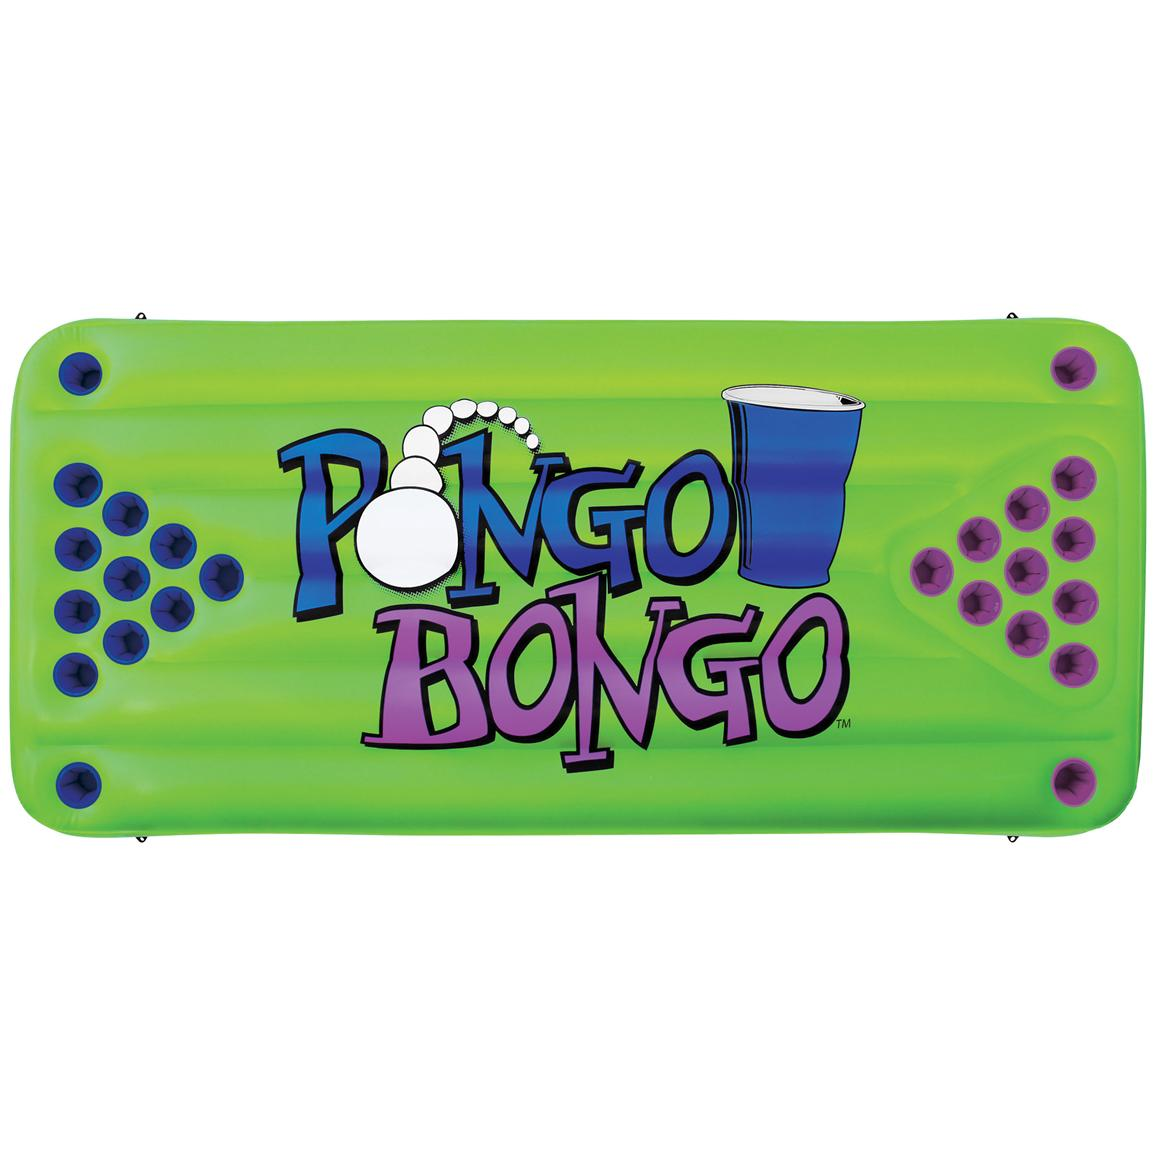 Pongo Bongo is a floating inflatable game table equipped with 12 cup holders on each side